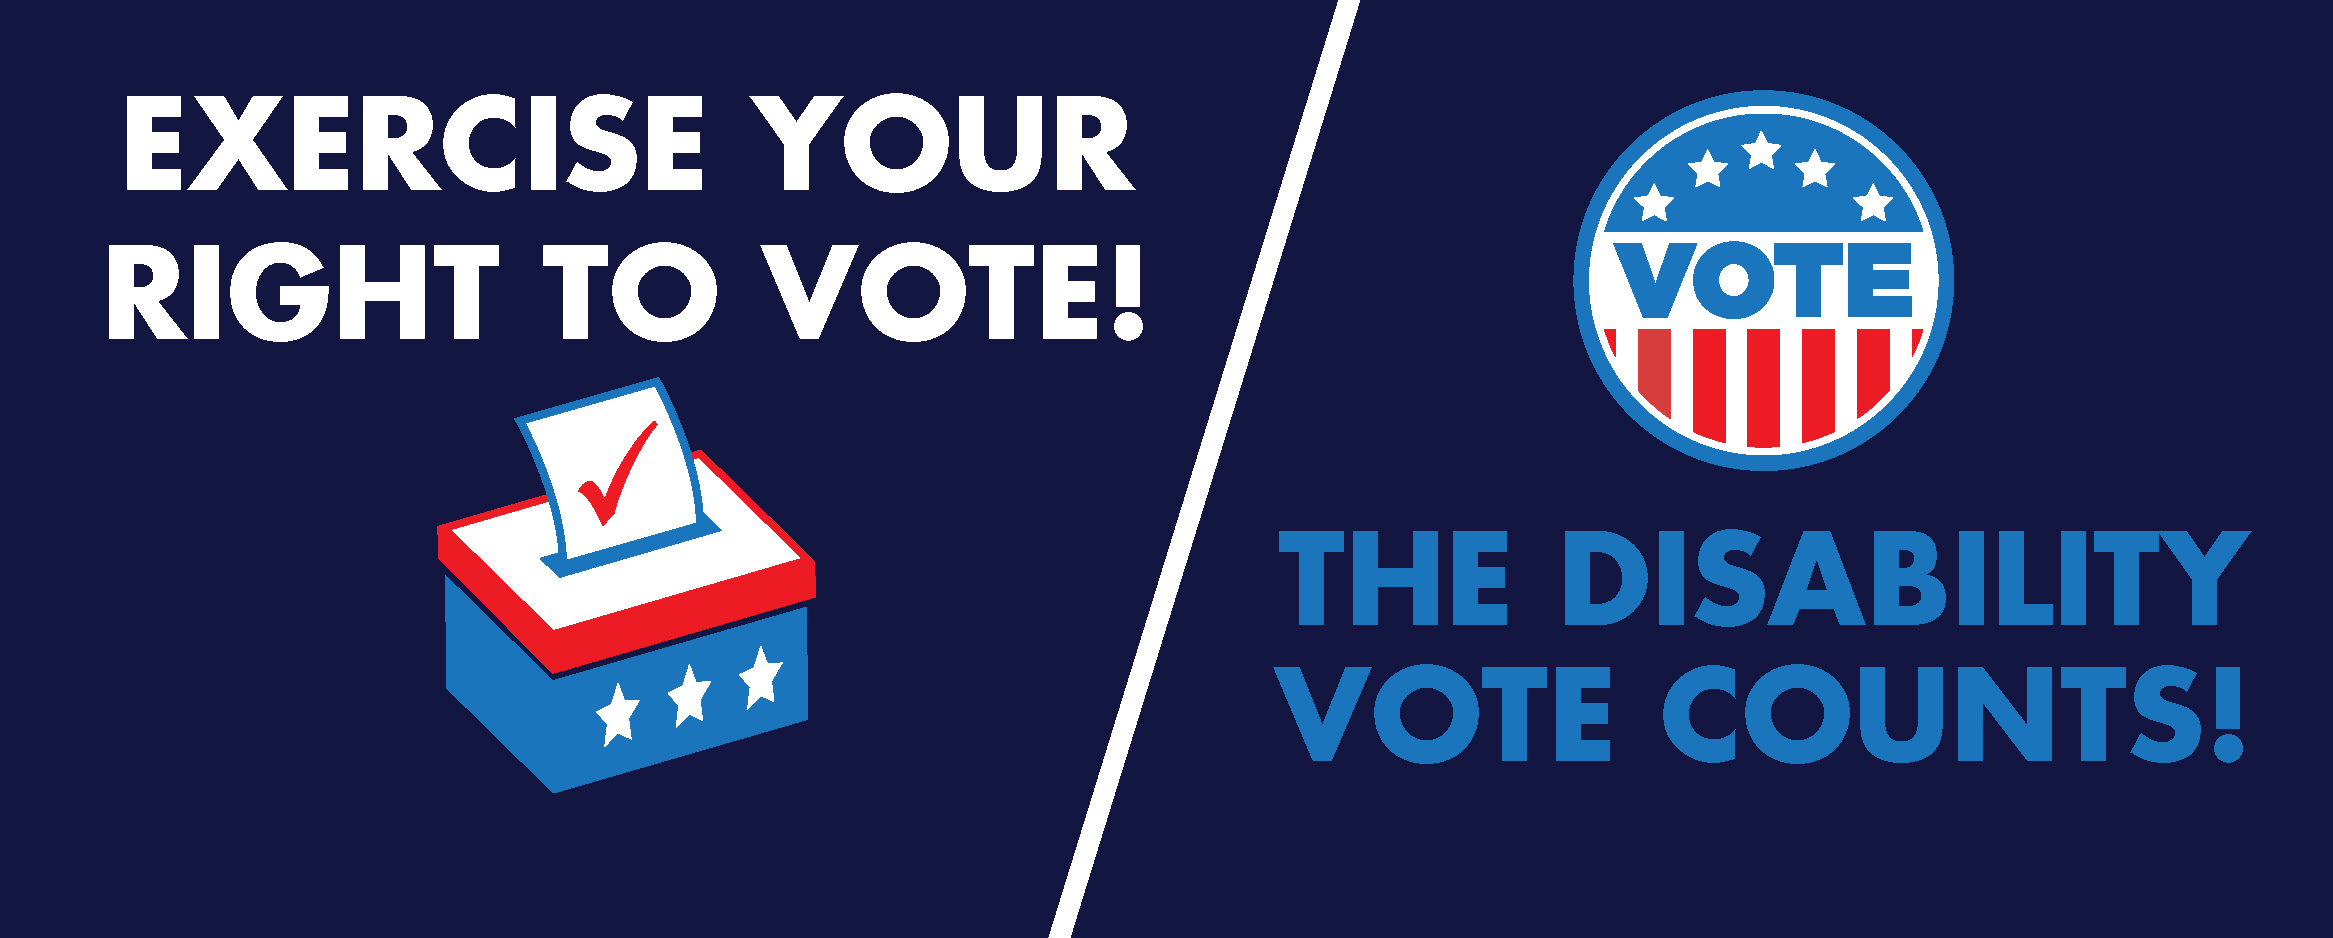 Exercise Your Right to Vote! The Disability Vote Counts!